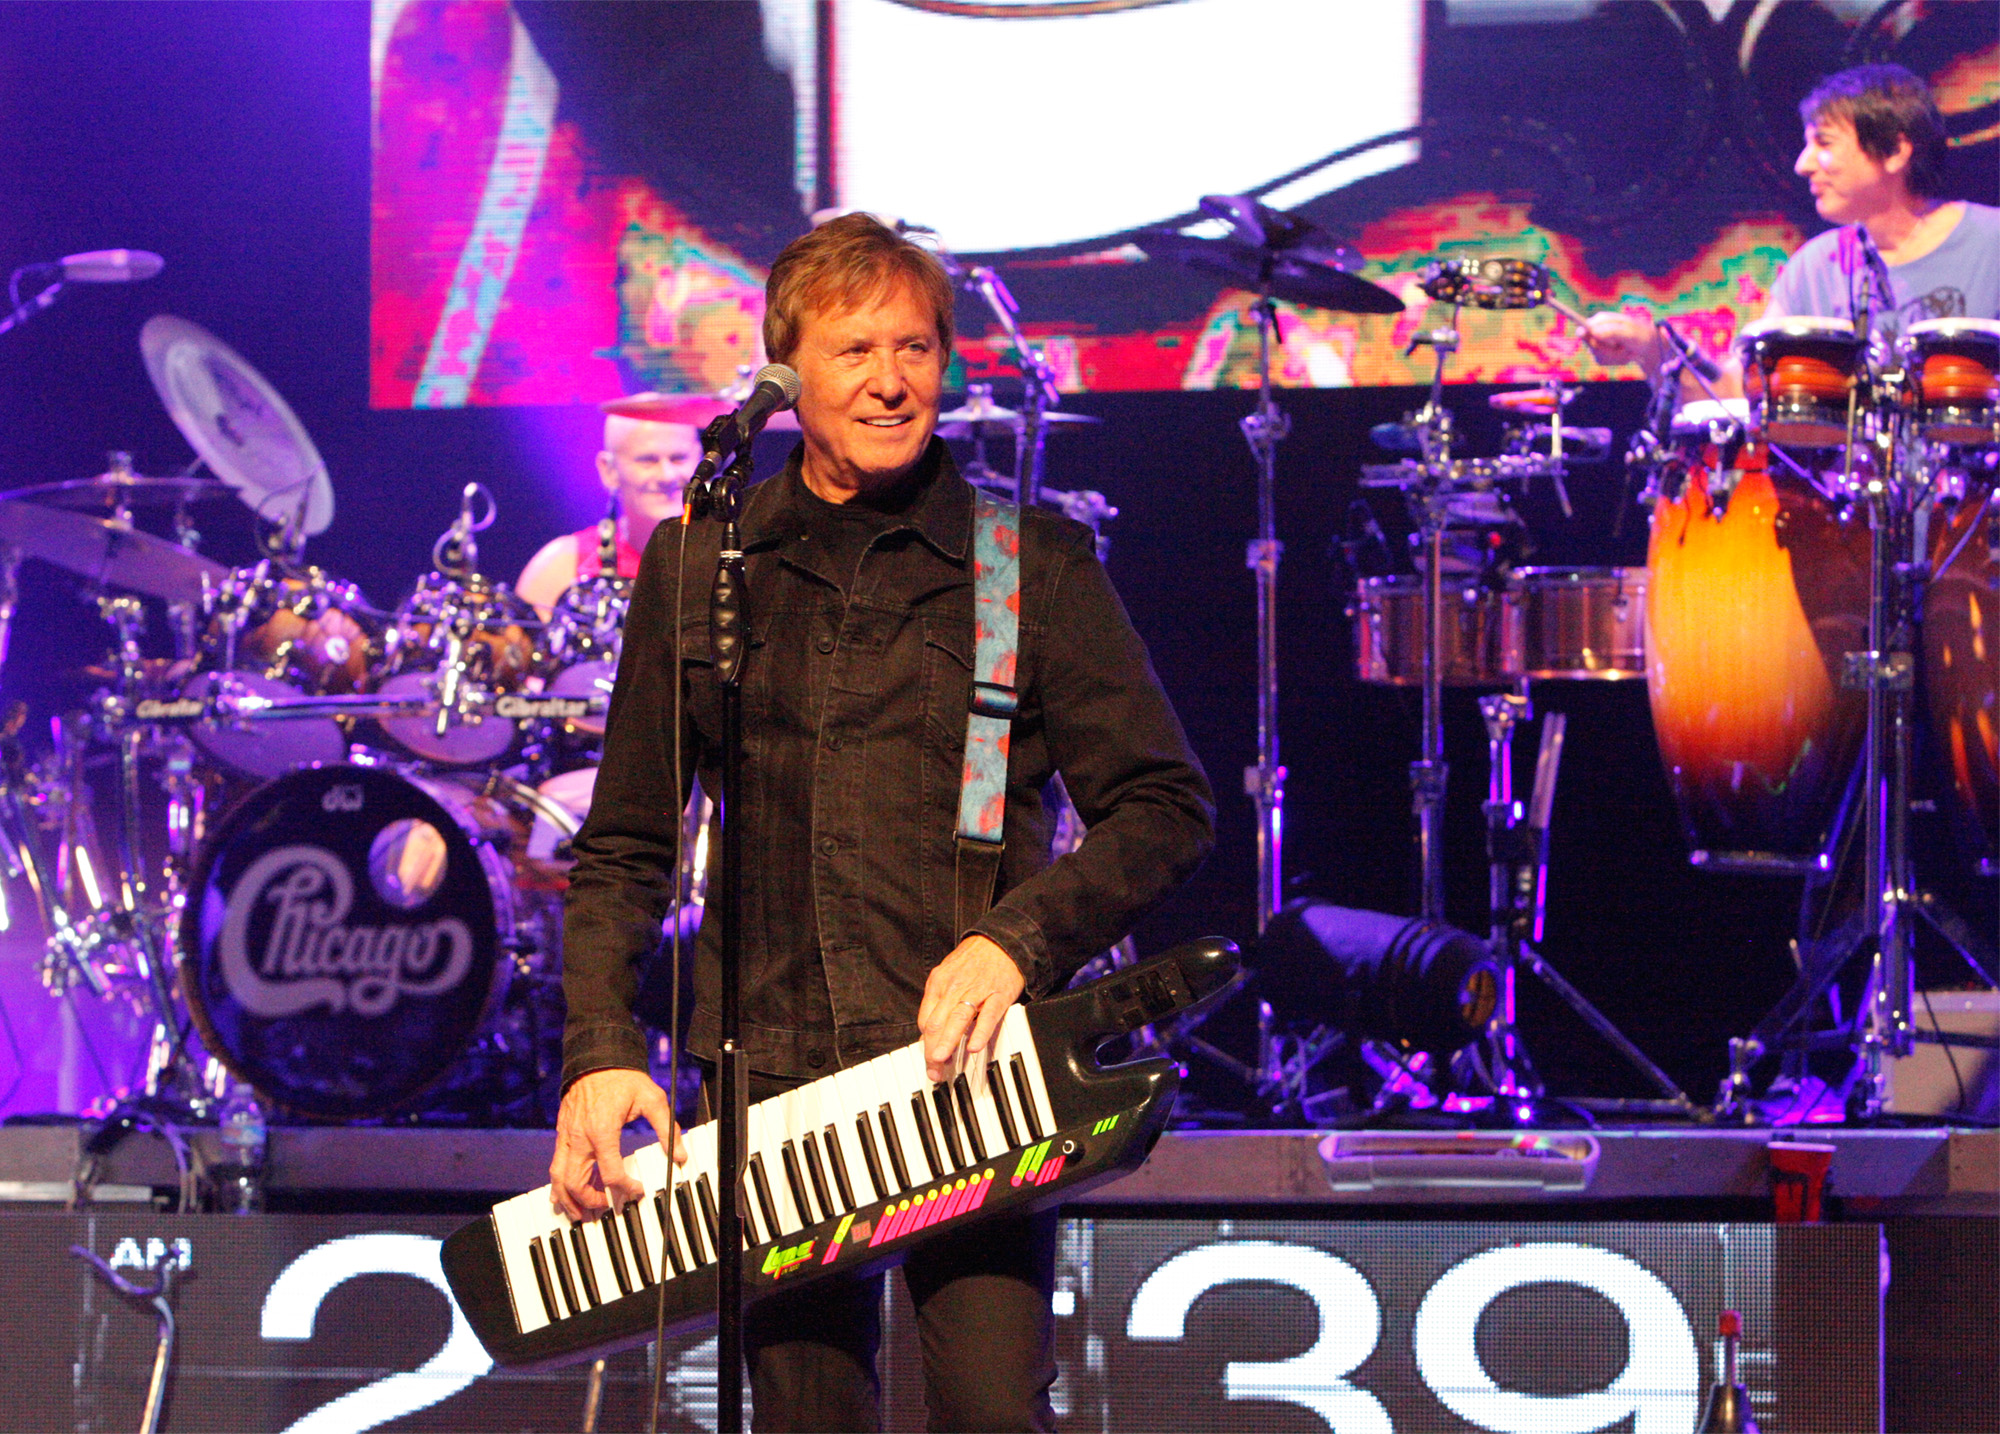 Photo of Robert Lamm from the band Chicago This photo was selected to be published in a book about the band.